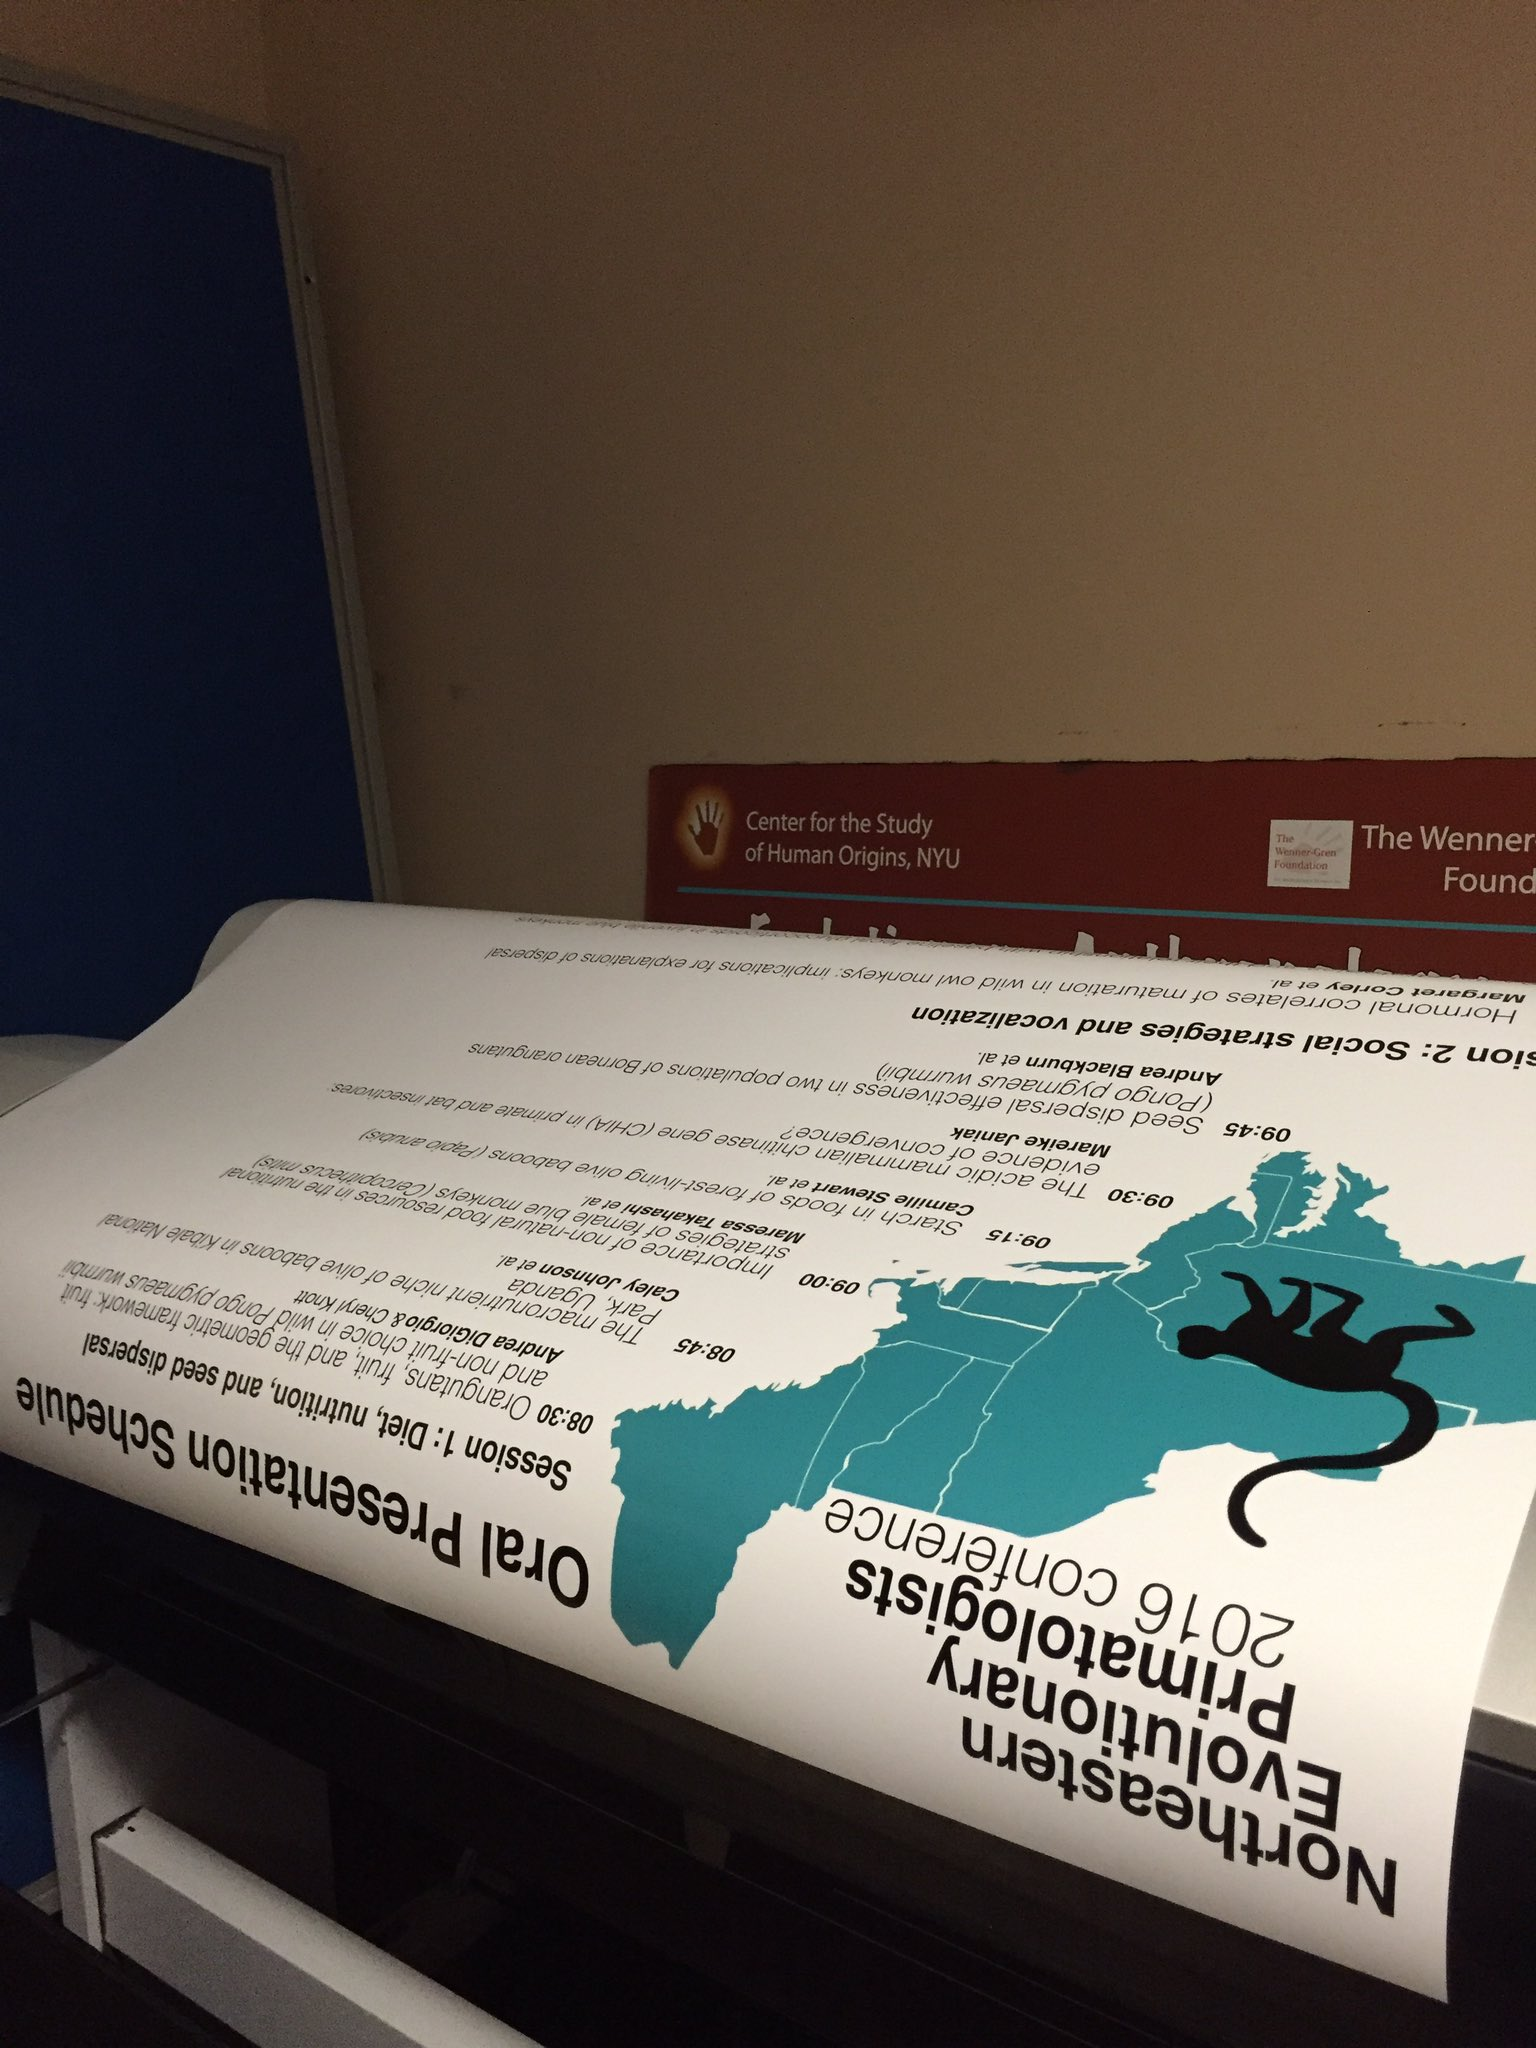 #NEEP2016 prep!! Poster of all the talk schedule ✔️ https://t.co/61coUWVIvR